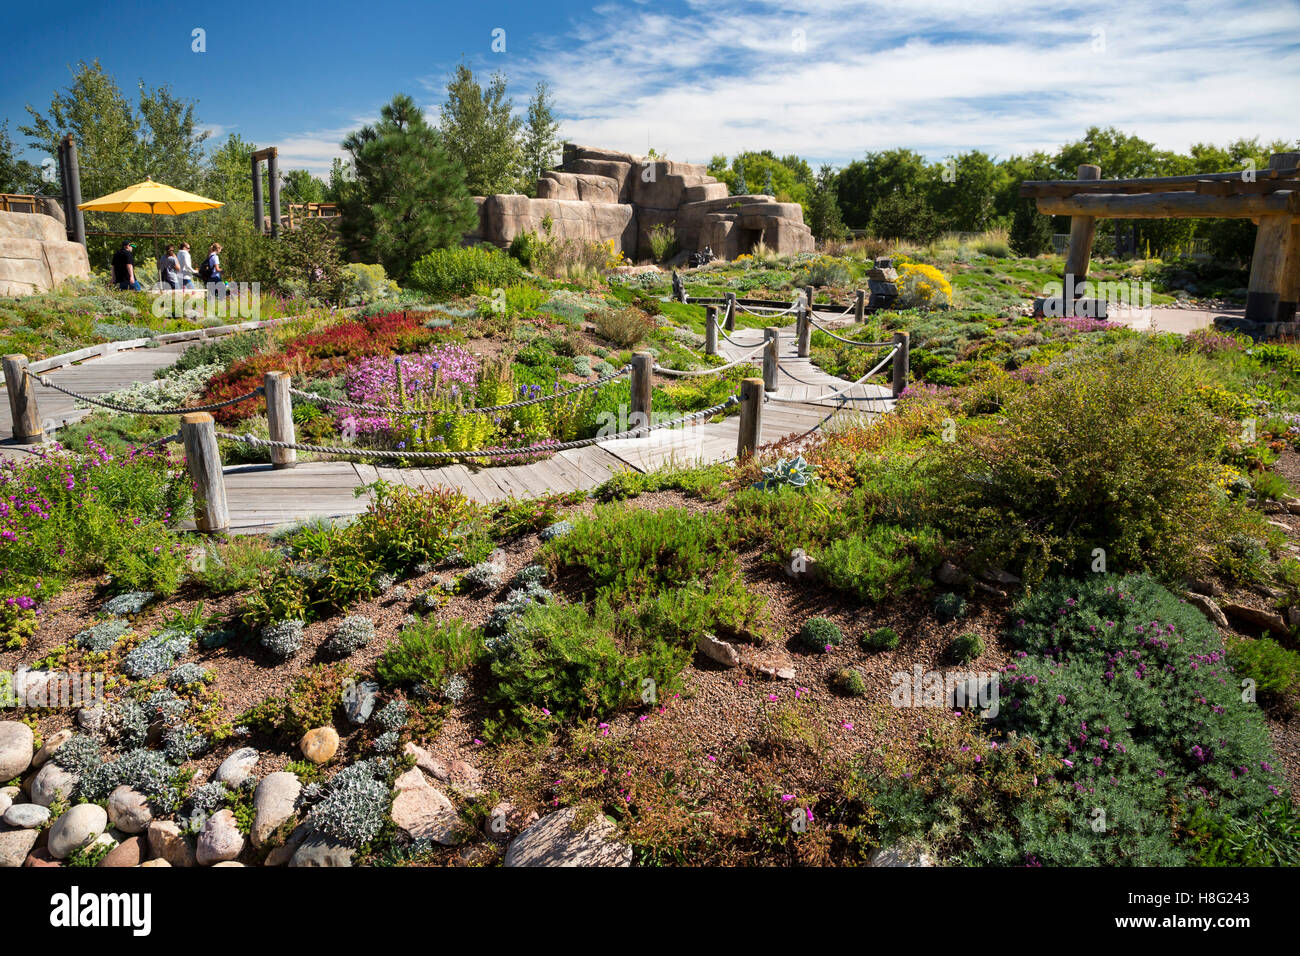 Denver, Colorado   The Childrenu0027s Garden At Denver Botanic Gardens.   Stock  Image